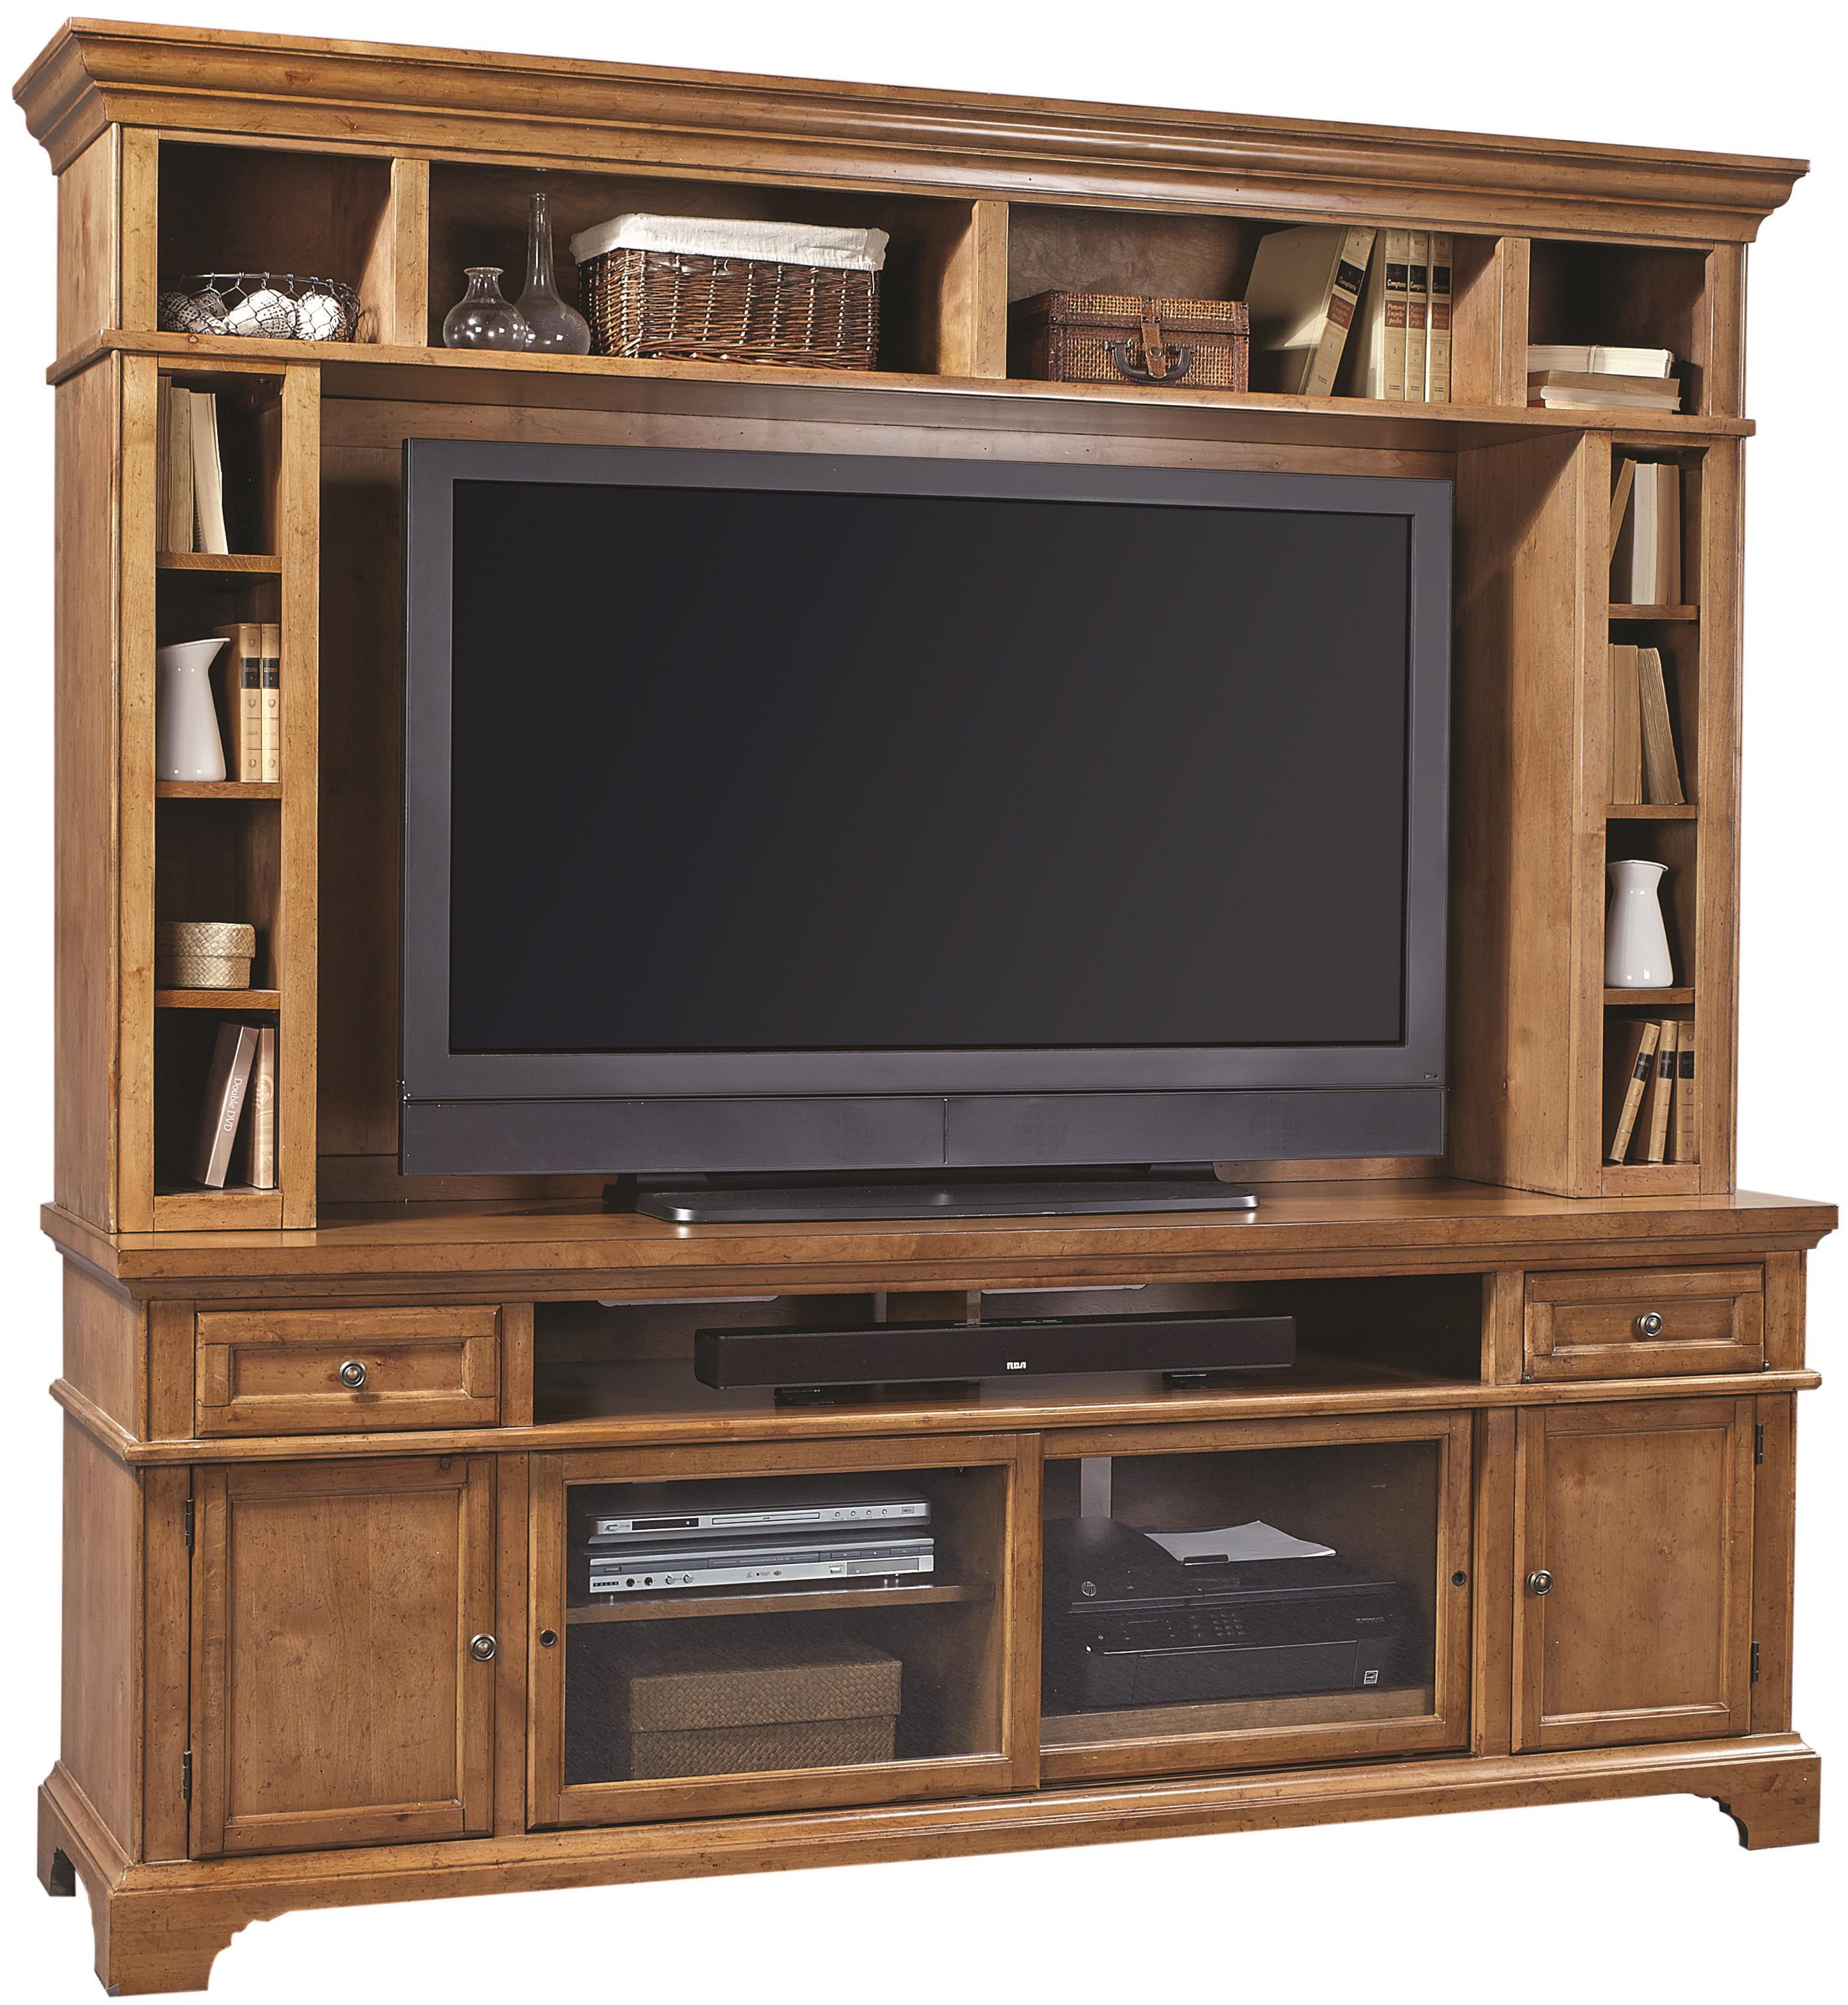 "Aspenhome Alder Creek 84"" Console and Hutch - Item Number: I09-284+H"